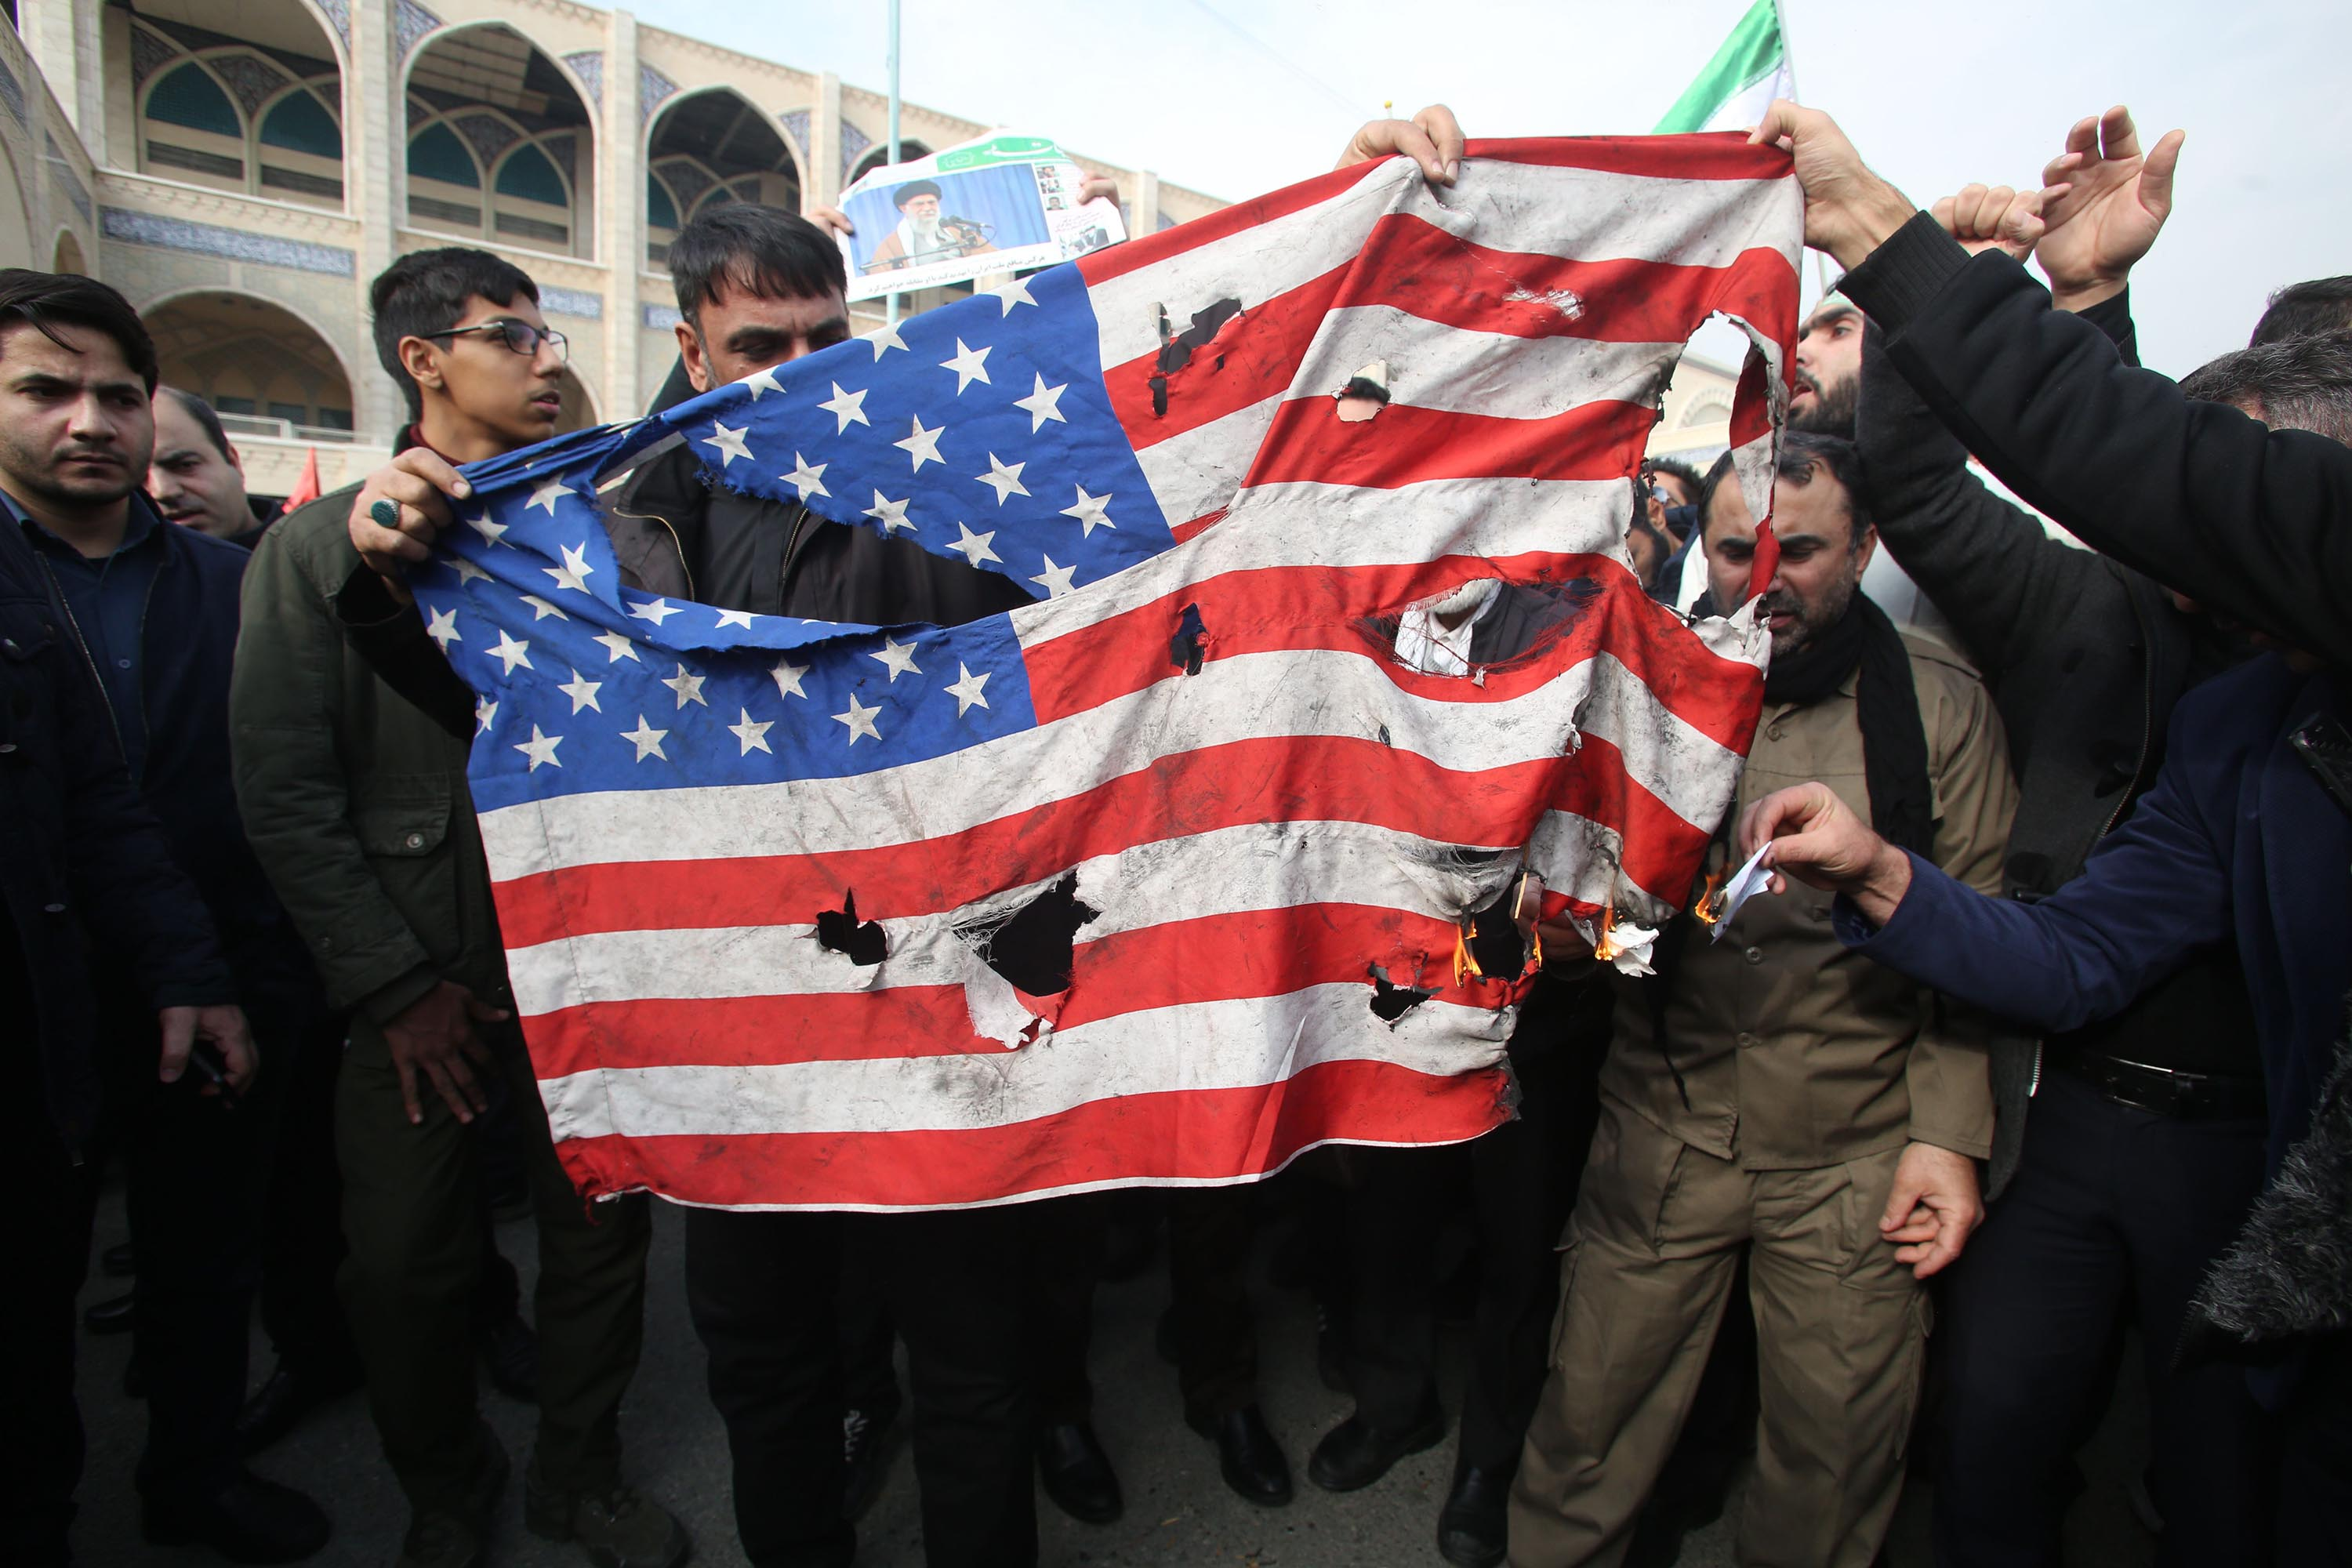 Iranians burn a US flag during Friday's demonstration in Tehran. Credit: Atta Kenare/AFP via Getty Images